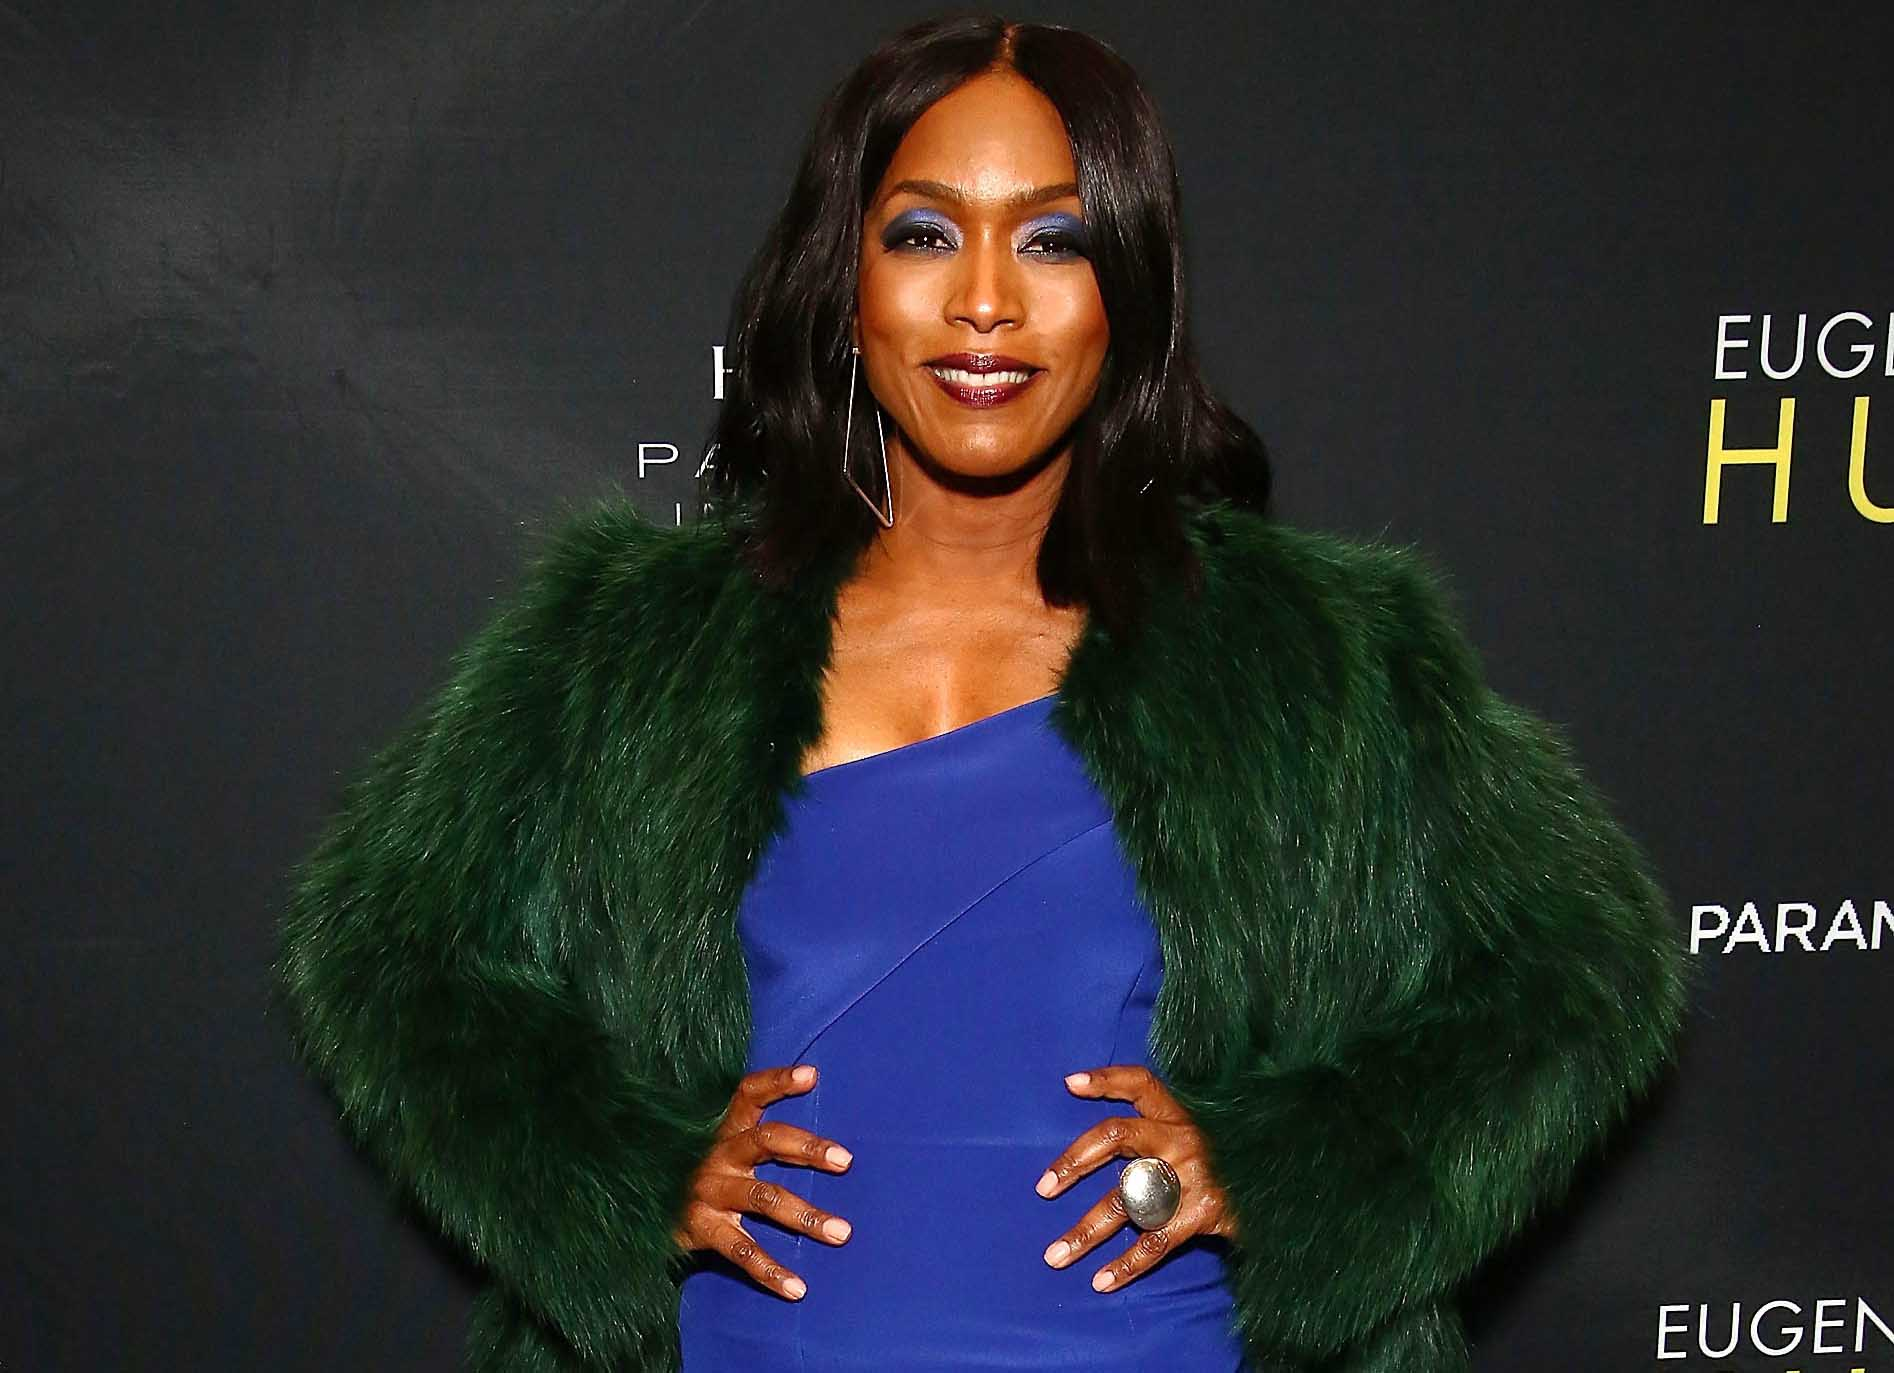 Oscars 2016: Black History Month Minute With Angela Bassett Pokes Fun At Oscar Nominations